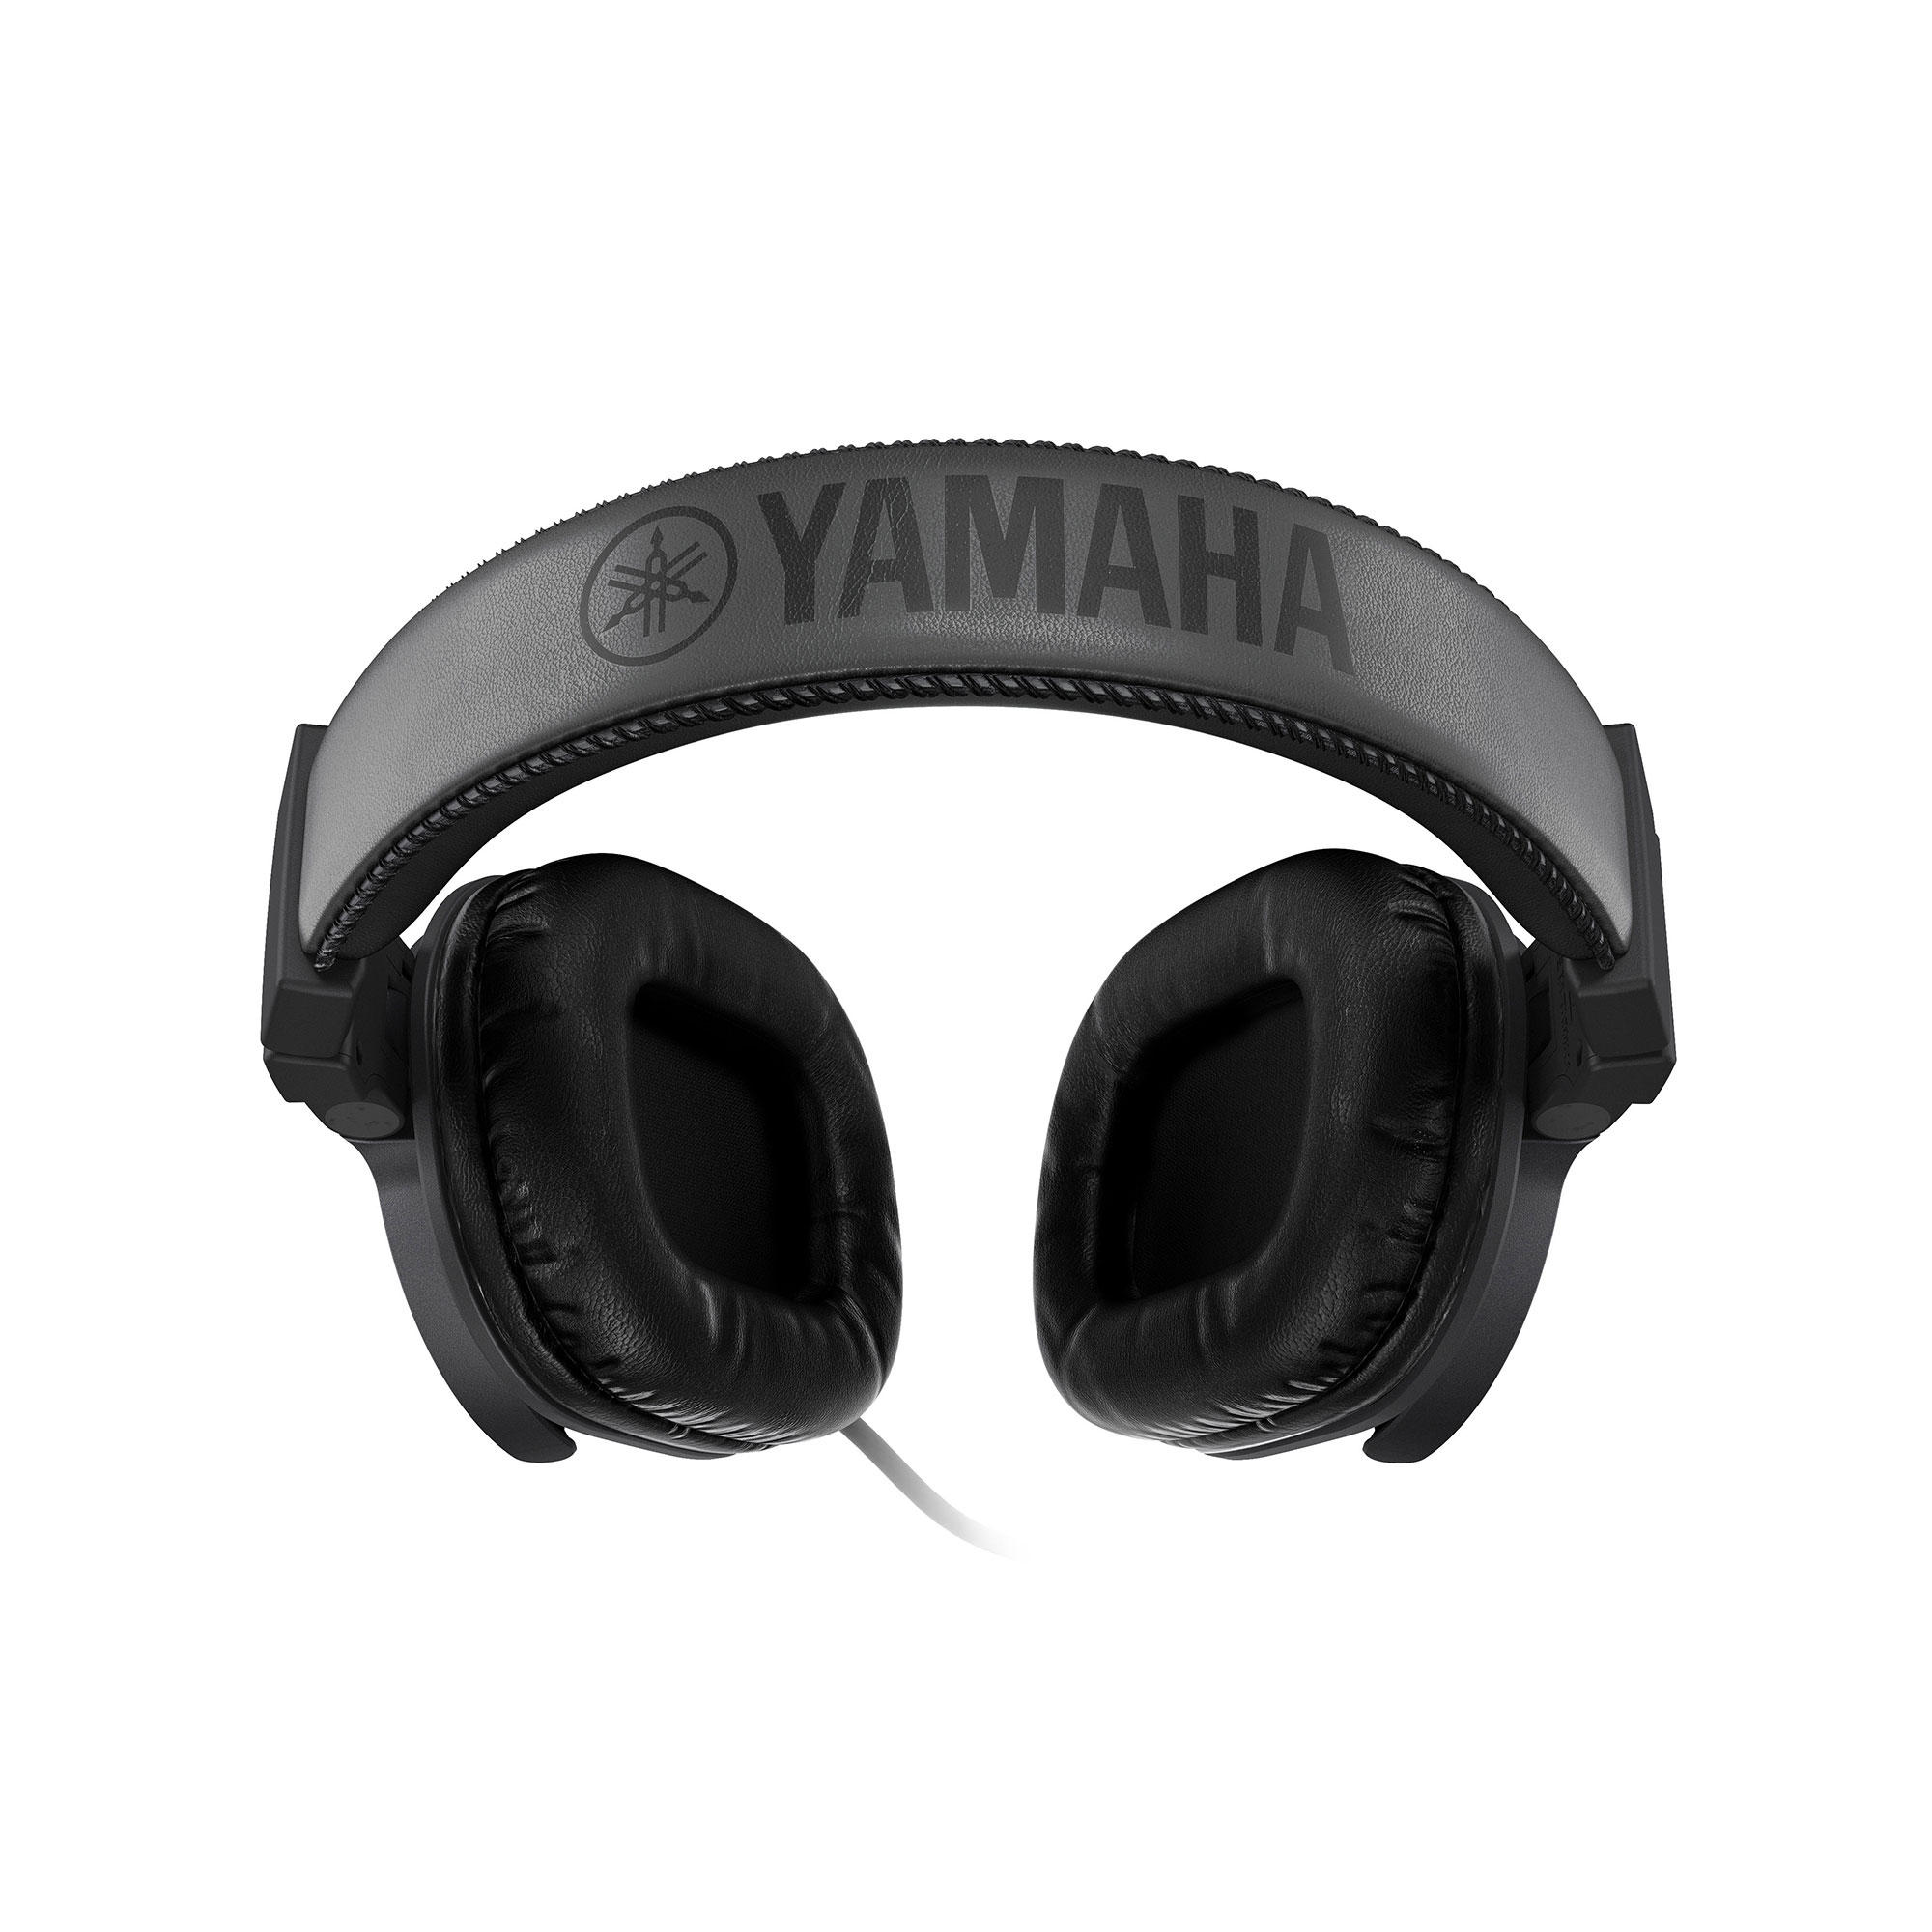 yamaha hph mt5 studio monitor headphones closed back design with reference monitor quality. Black Bedroom Furniture Sets. Home Design Ideas